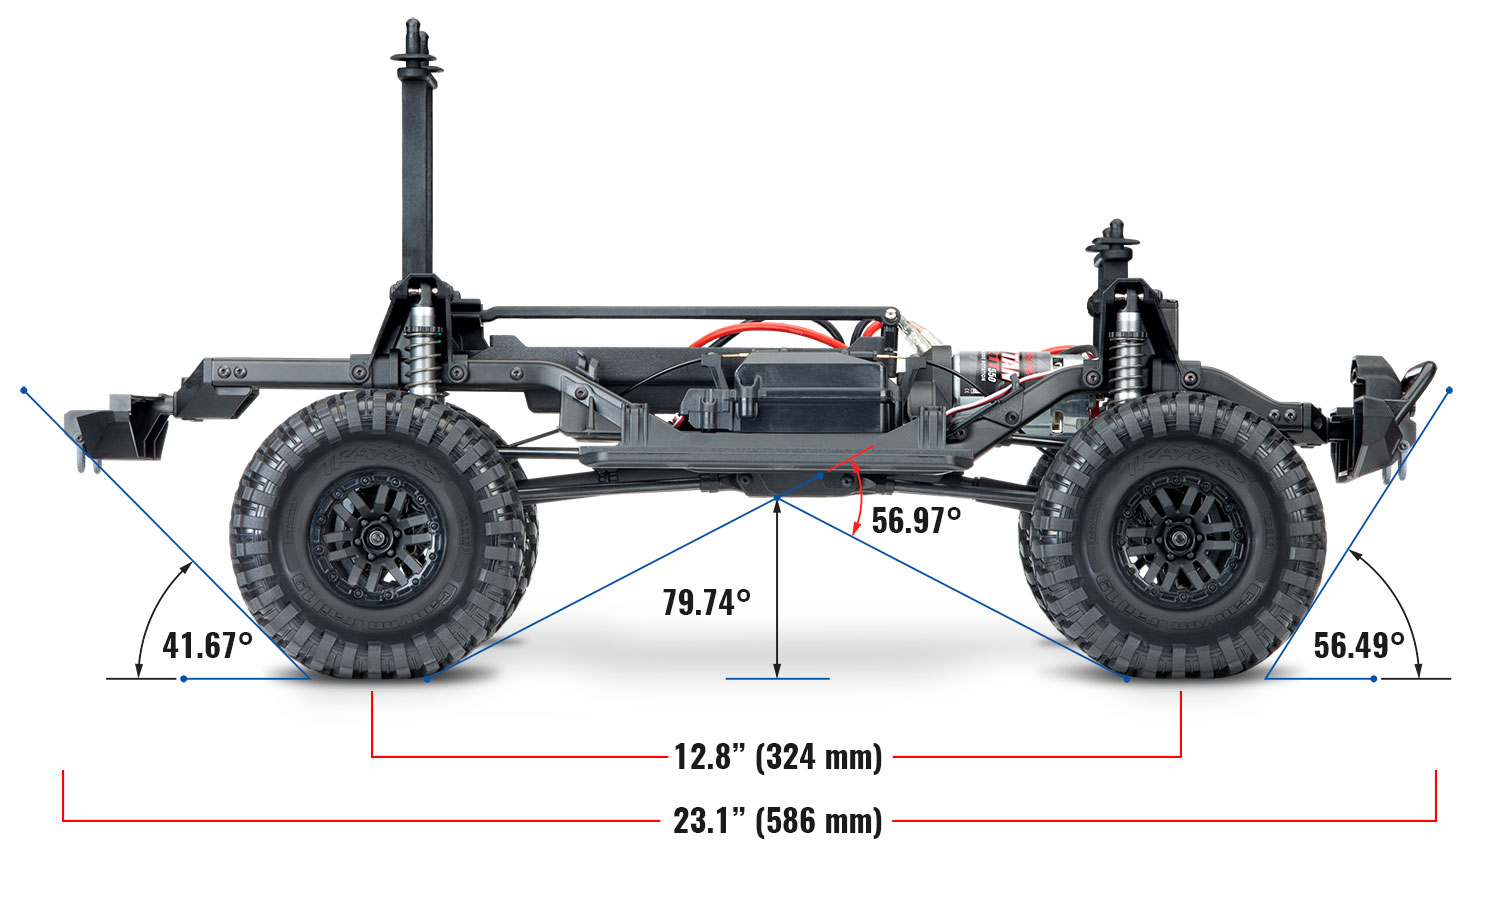 Traxxas TRX-4 1/10 Scale And Trail Crawler - Page 6 82056-4-Side-Chassis-Dimensions